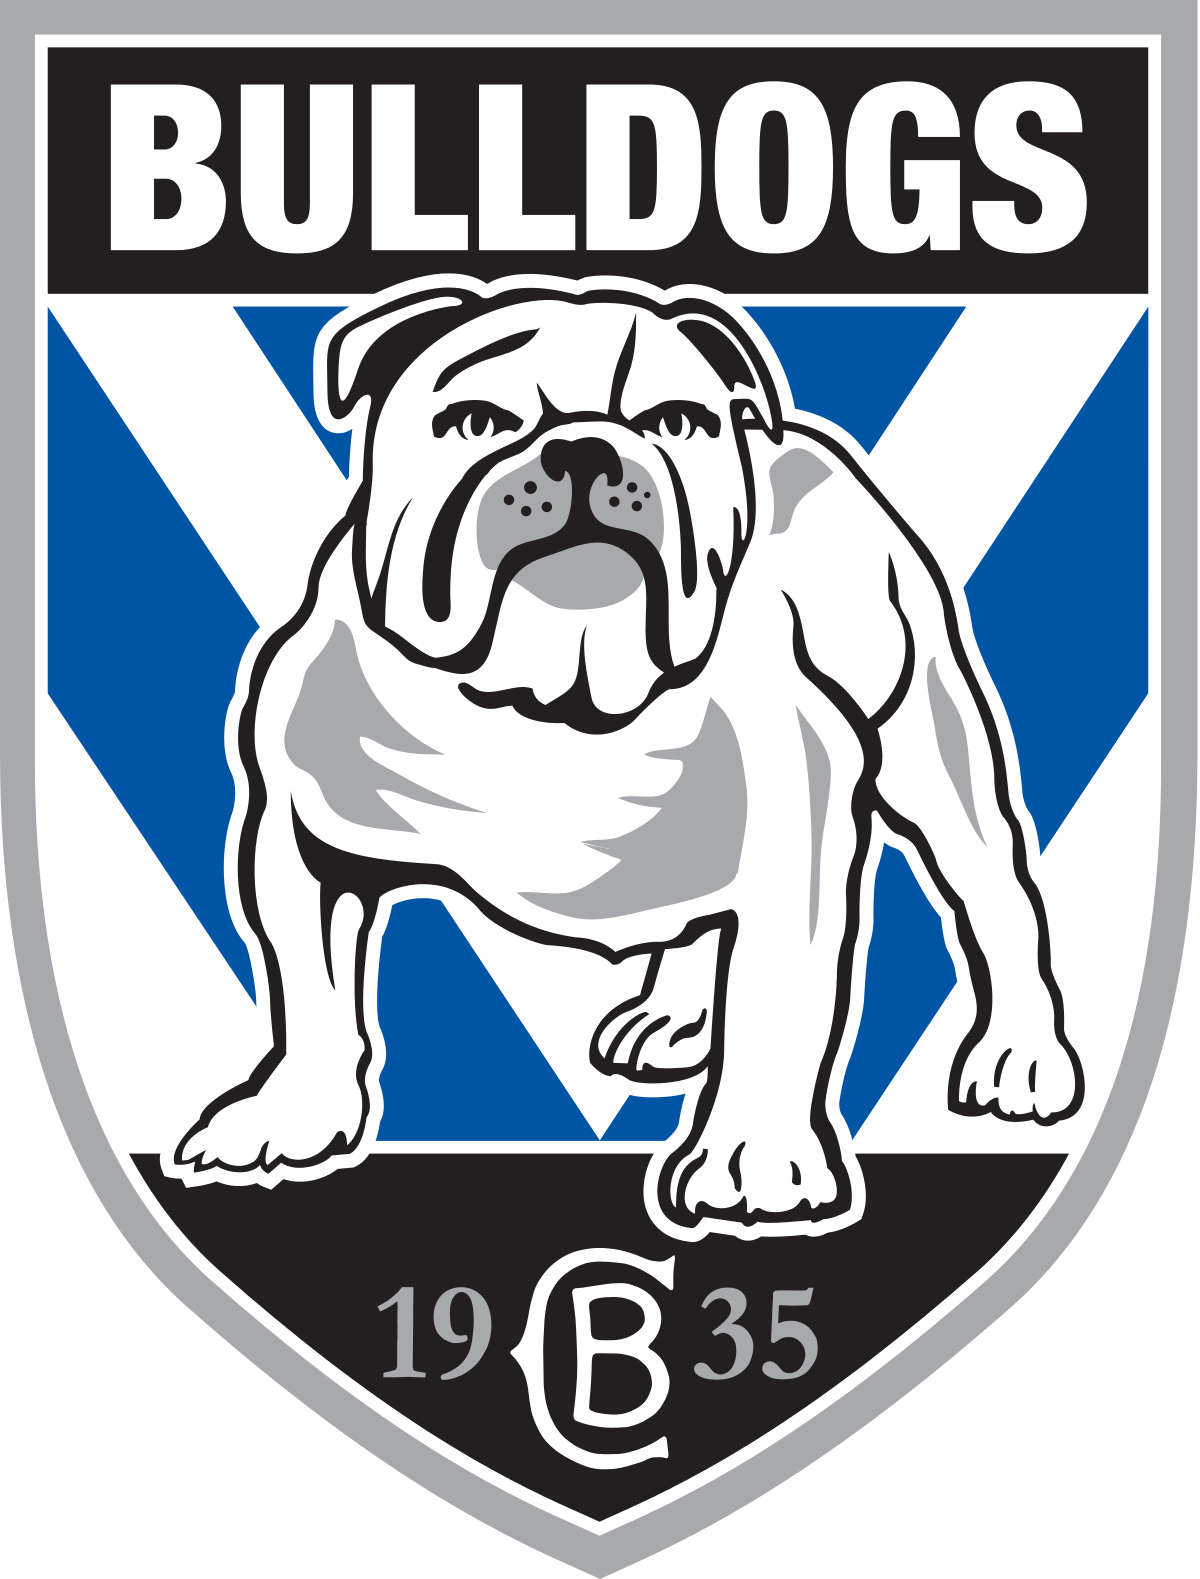 Bulldog football mascot clipart svg transparent Bulldog Logo (48+) Desktop Backgrounds svg transparent